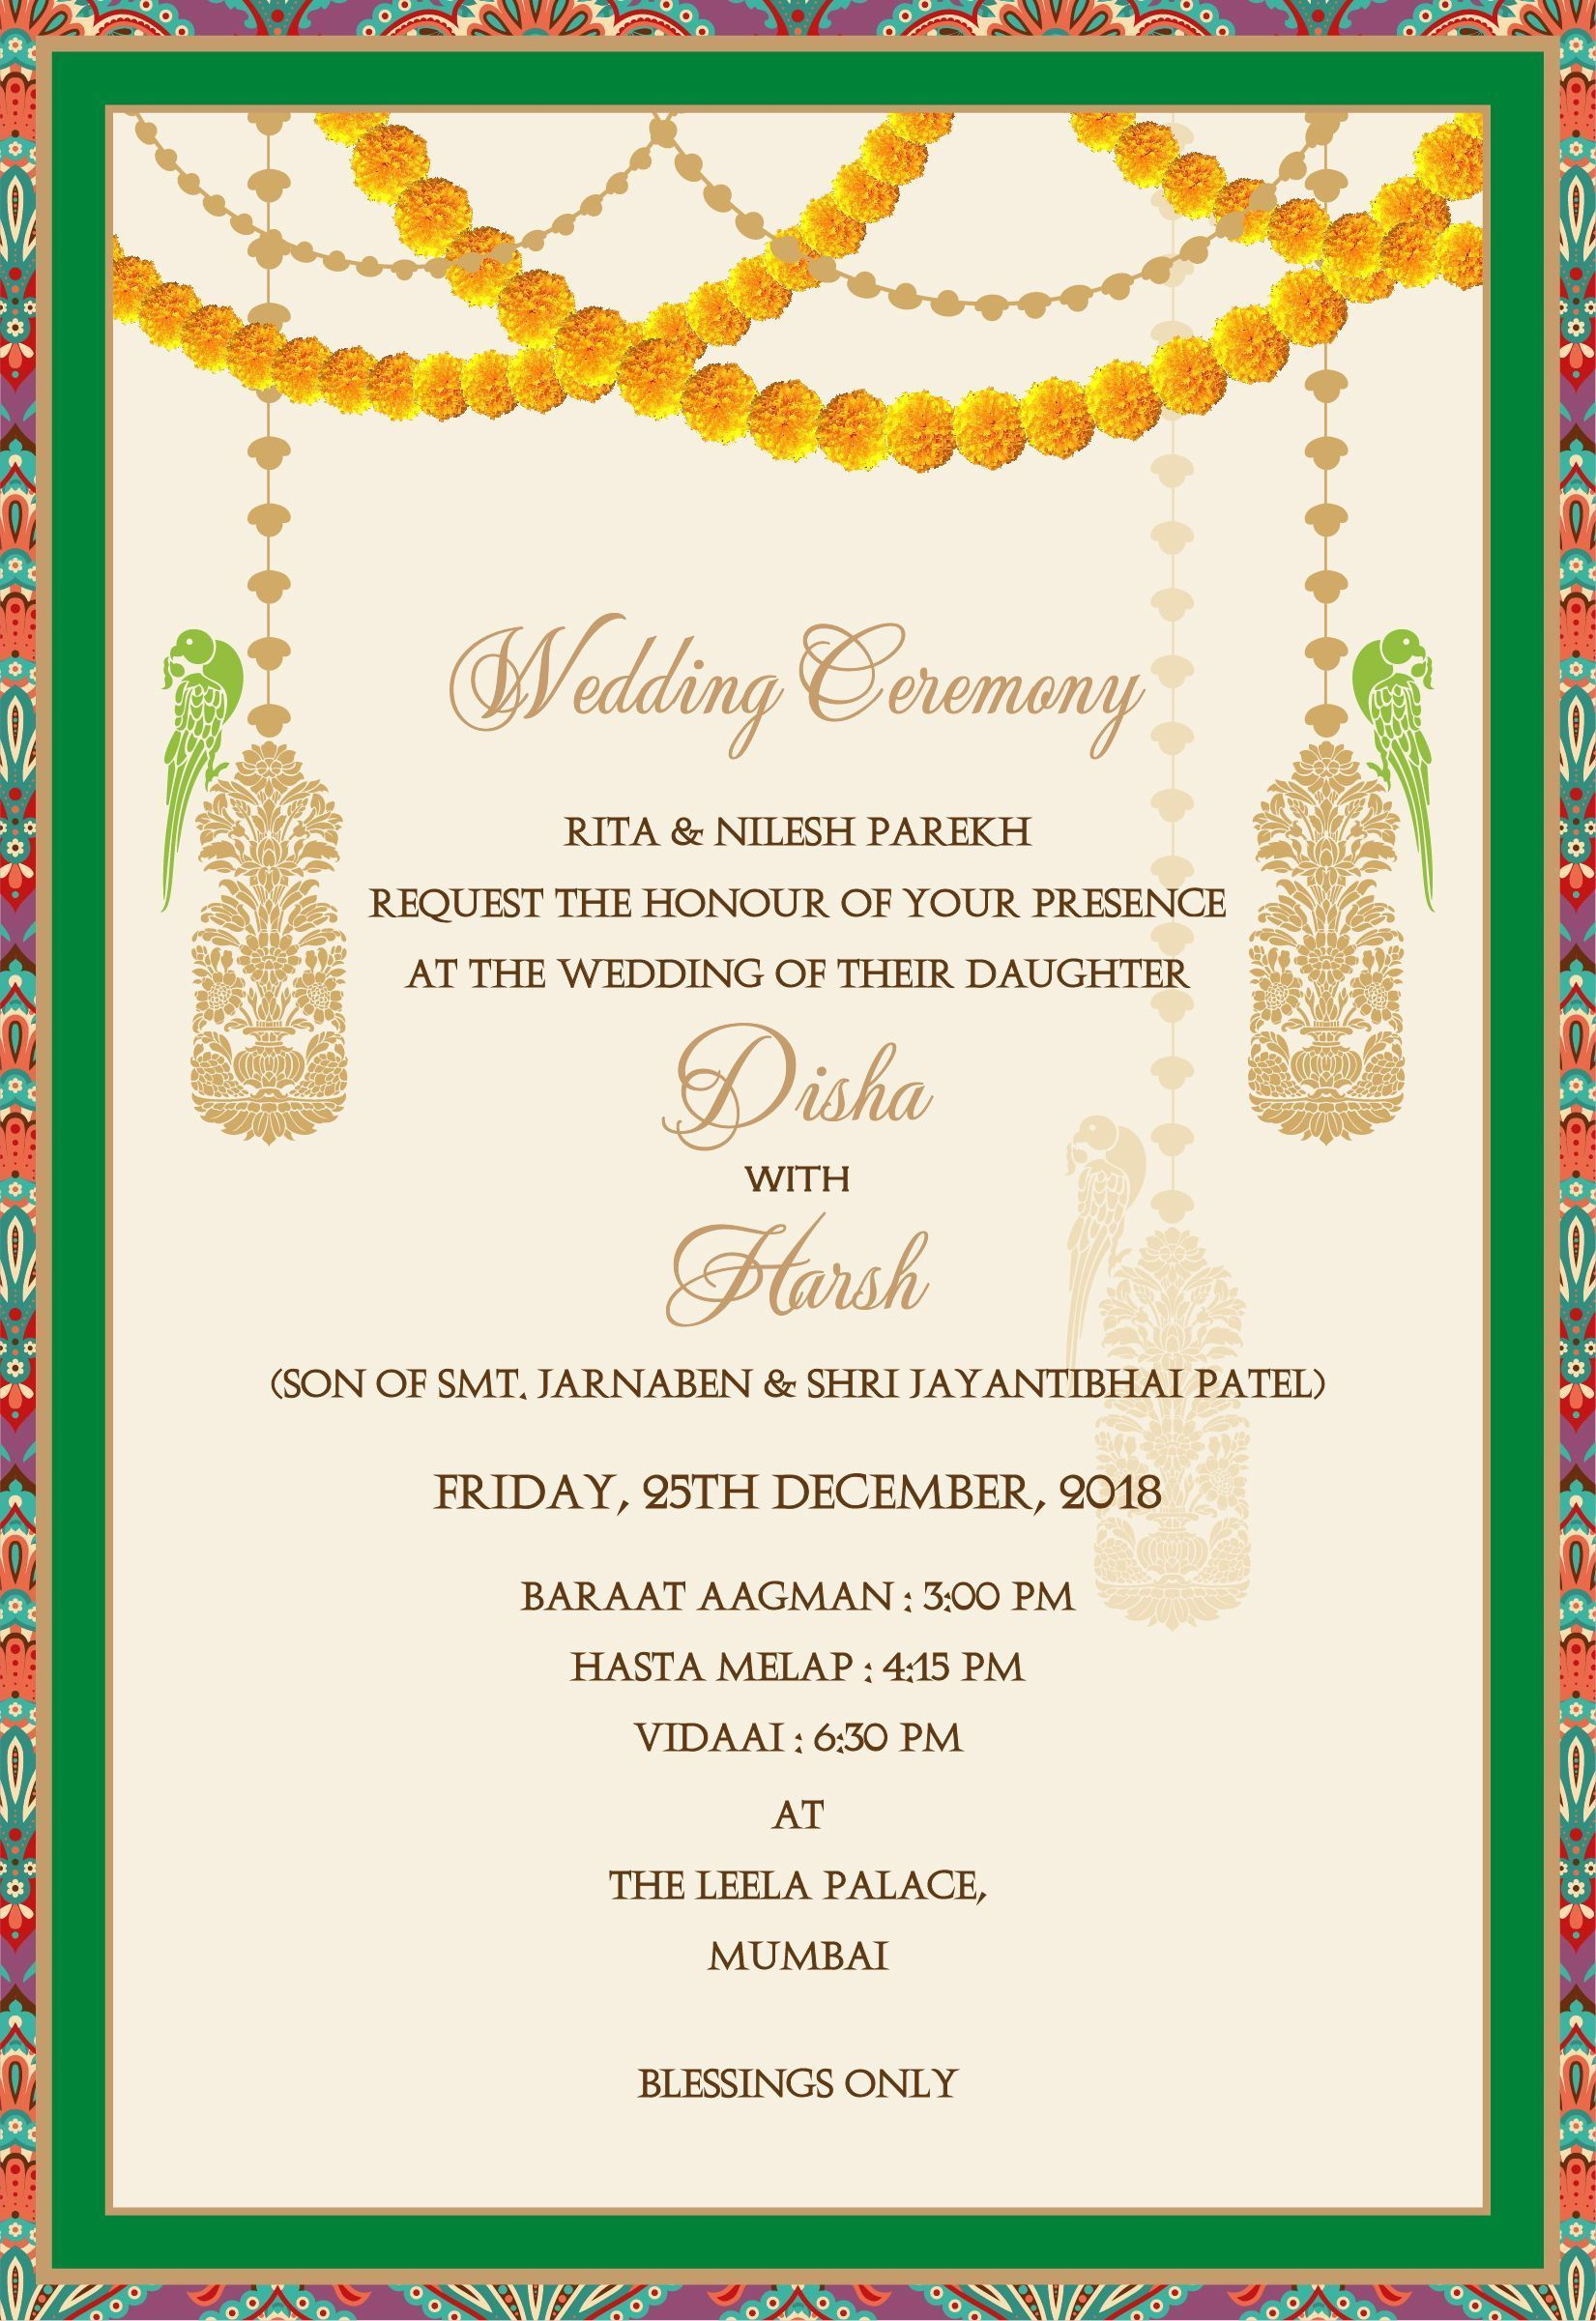 How To Write Indian Wedding Invitation Card How To Write Indian Wedding In 2020 Indian Wedding Invitation Cards Indian Wedding Invitation Wording Wedding Card Wordings